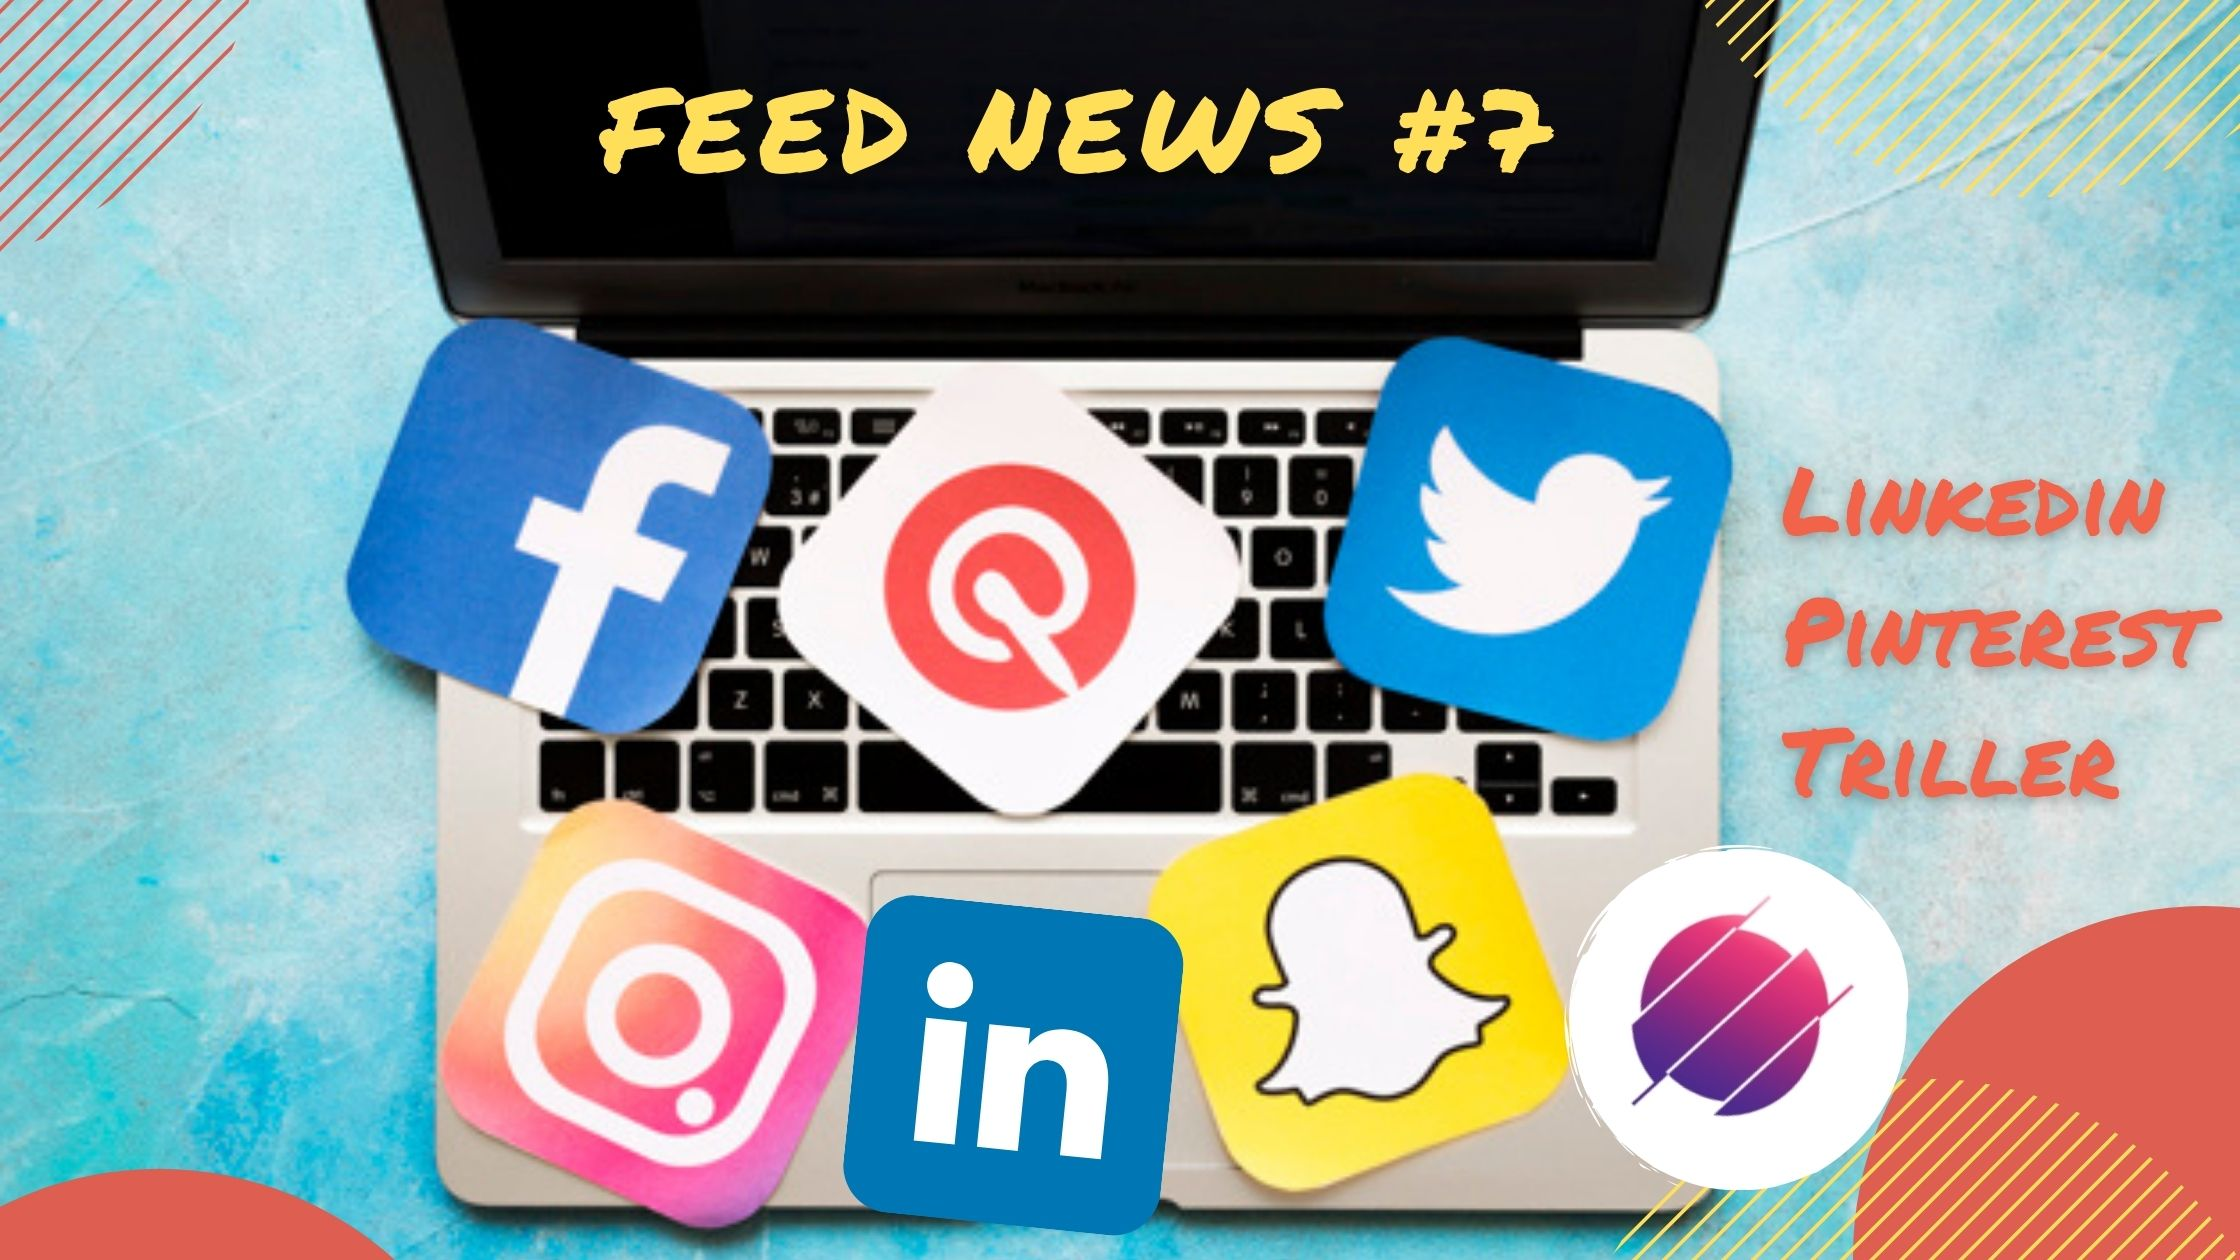 Feed News #7 Septembre : Linkedin, Pinterest, Triller